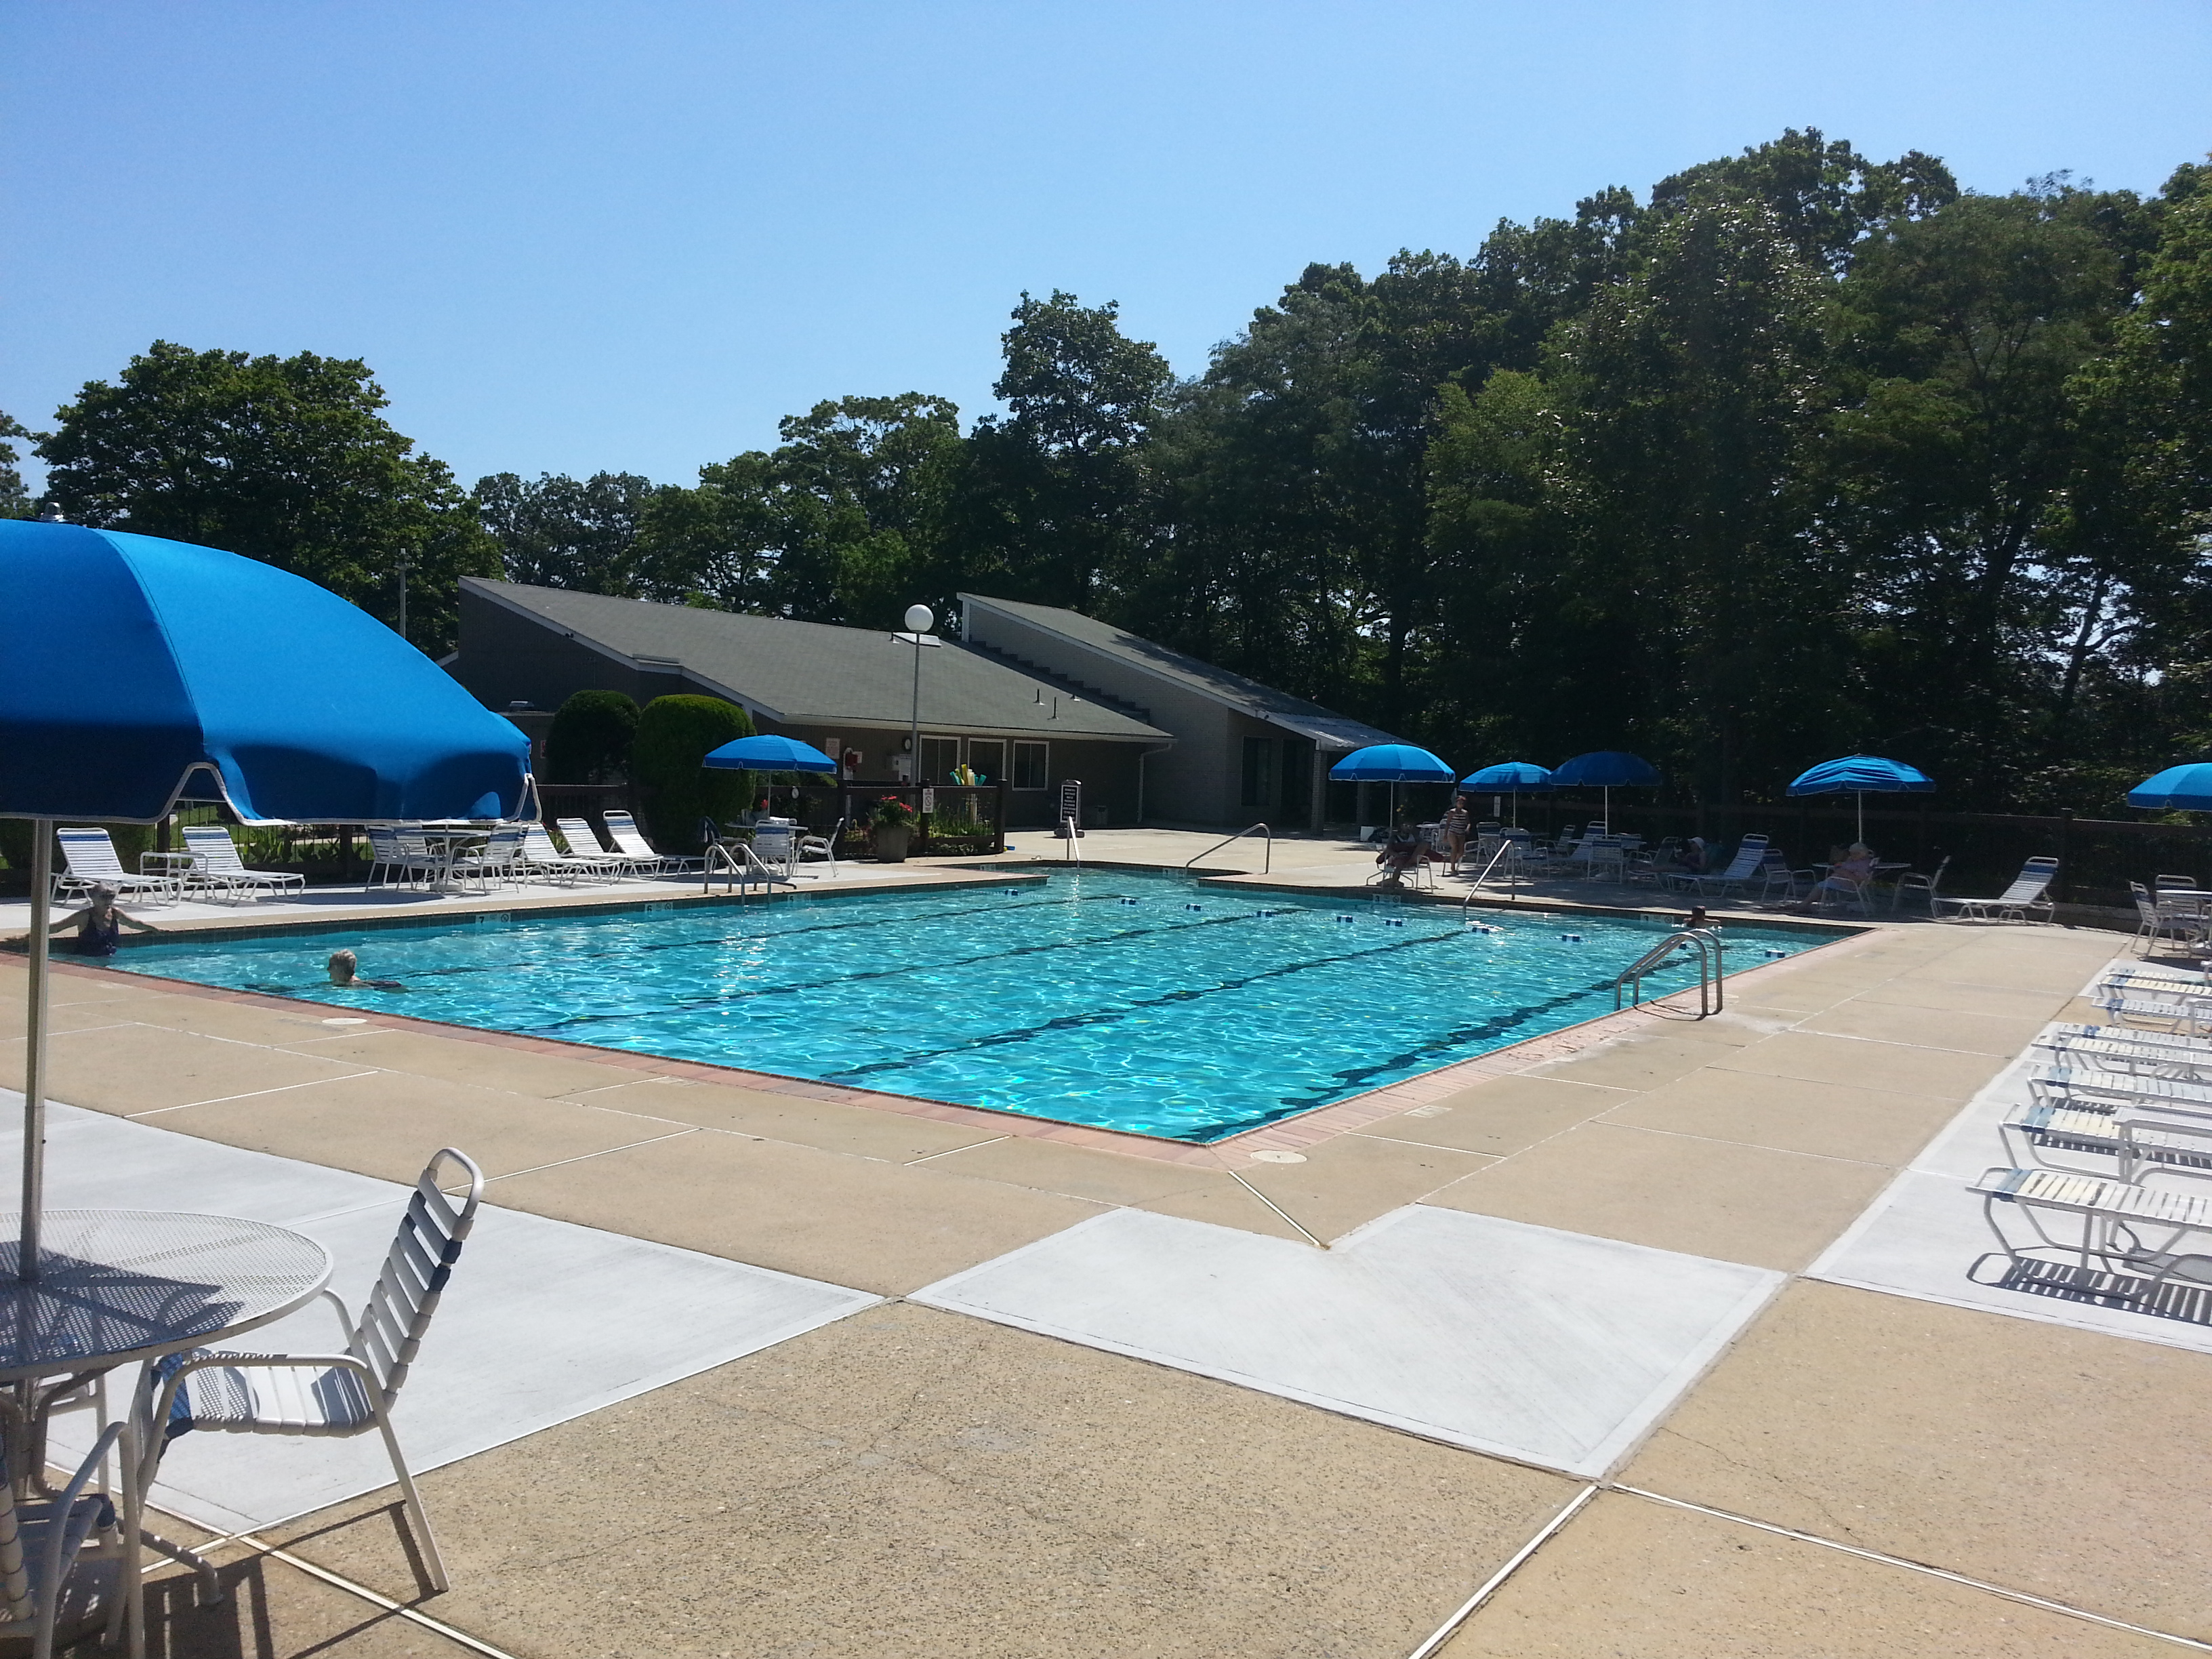 The Shadow Lake Village pool, pictured here, is located next to the clubhouse and is a popular place